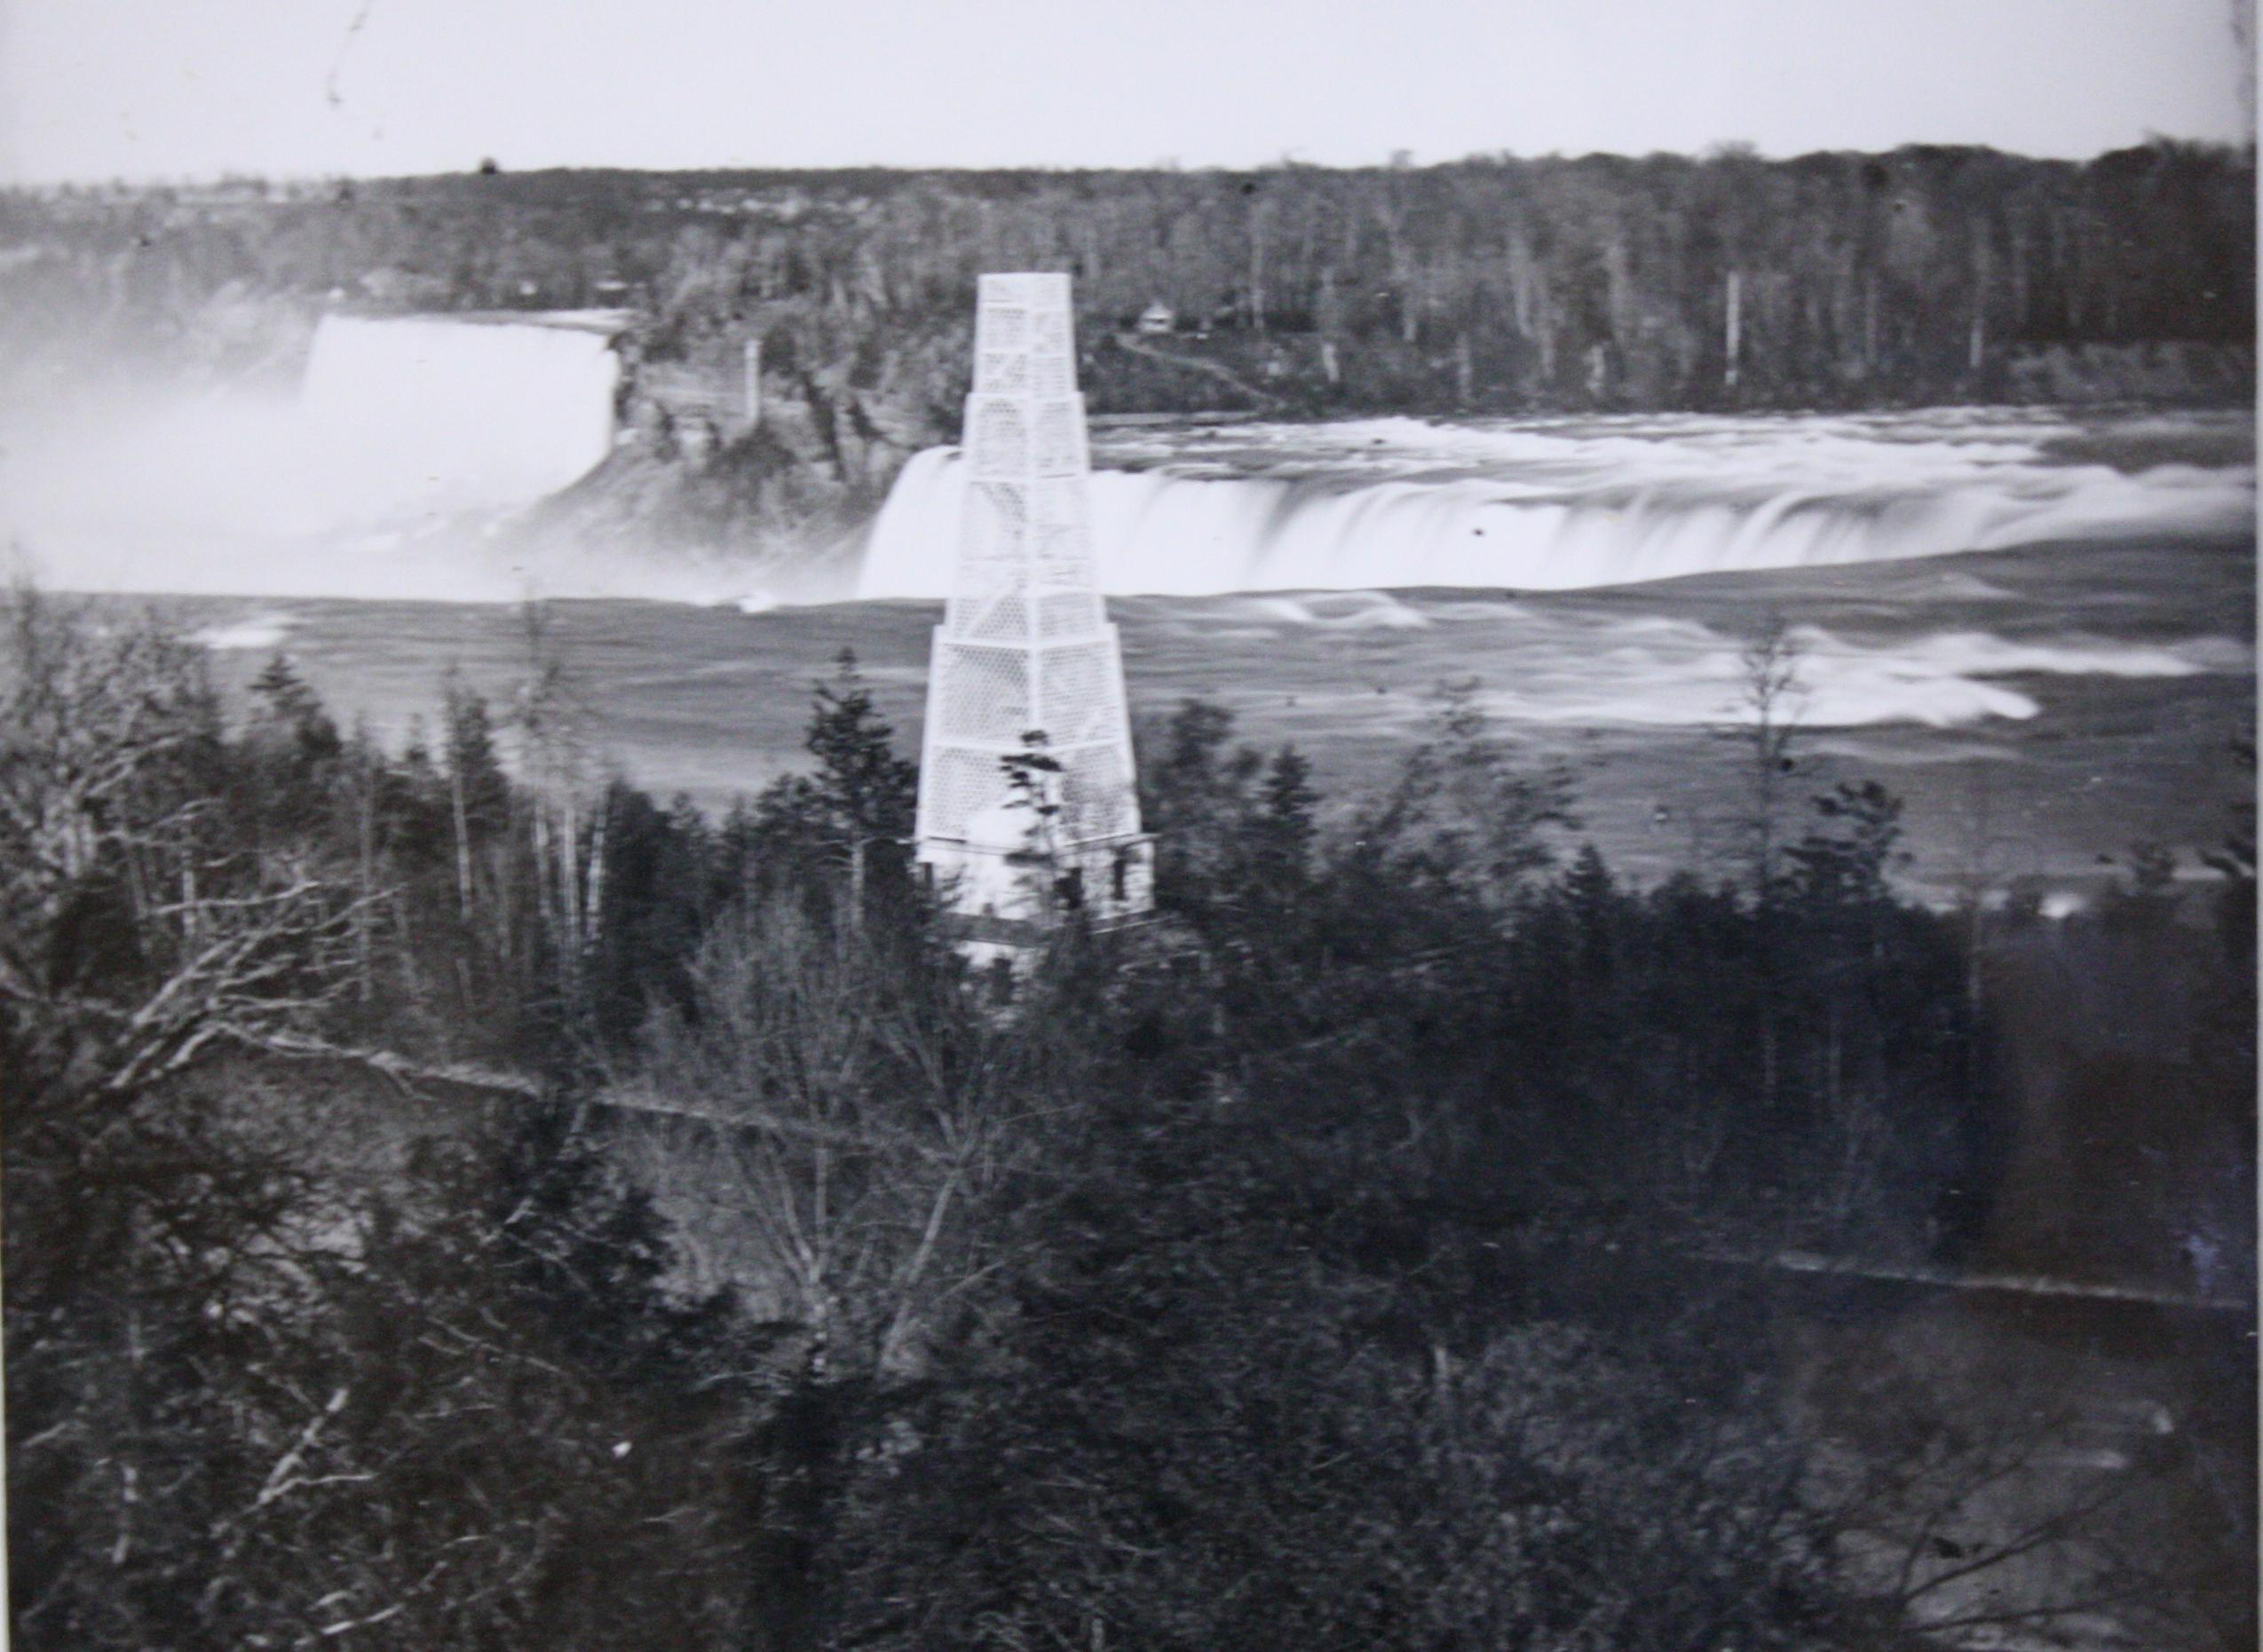 Street's Pagoda. Latticed tower allowing a view of the Niagara Falls. Many trees surround the structure. It is stark white in contrast to the darkness of the trees and water. The stair-case which a potential viewer would walk up appears through the lattice. American Falls is at far left, the Horseshoe Falls is directly behind the tower.